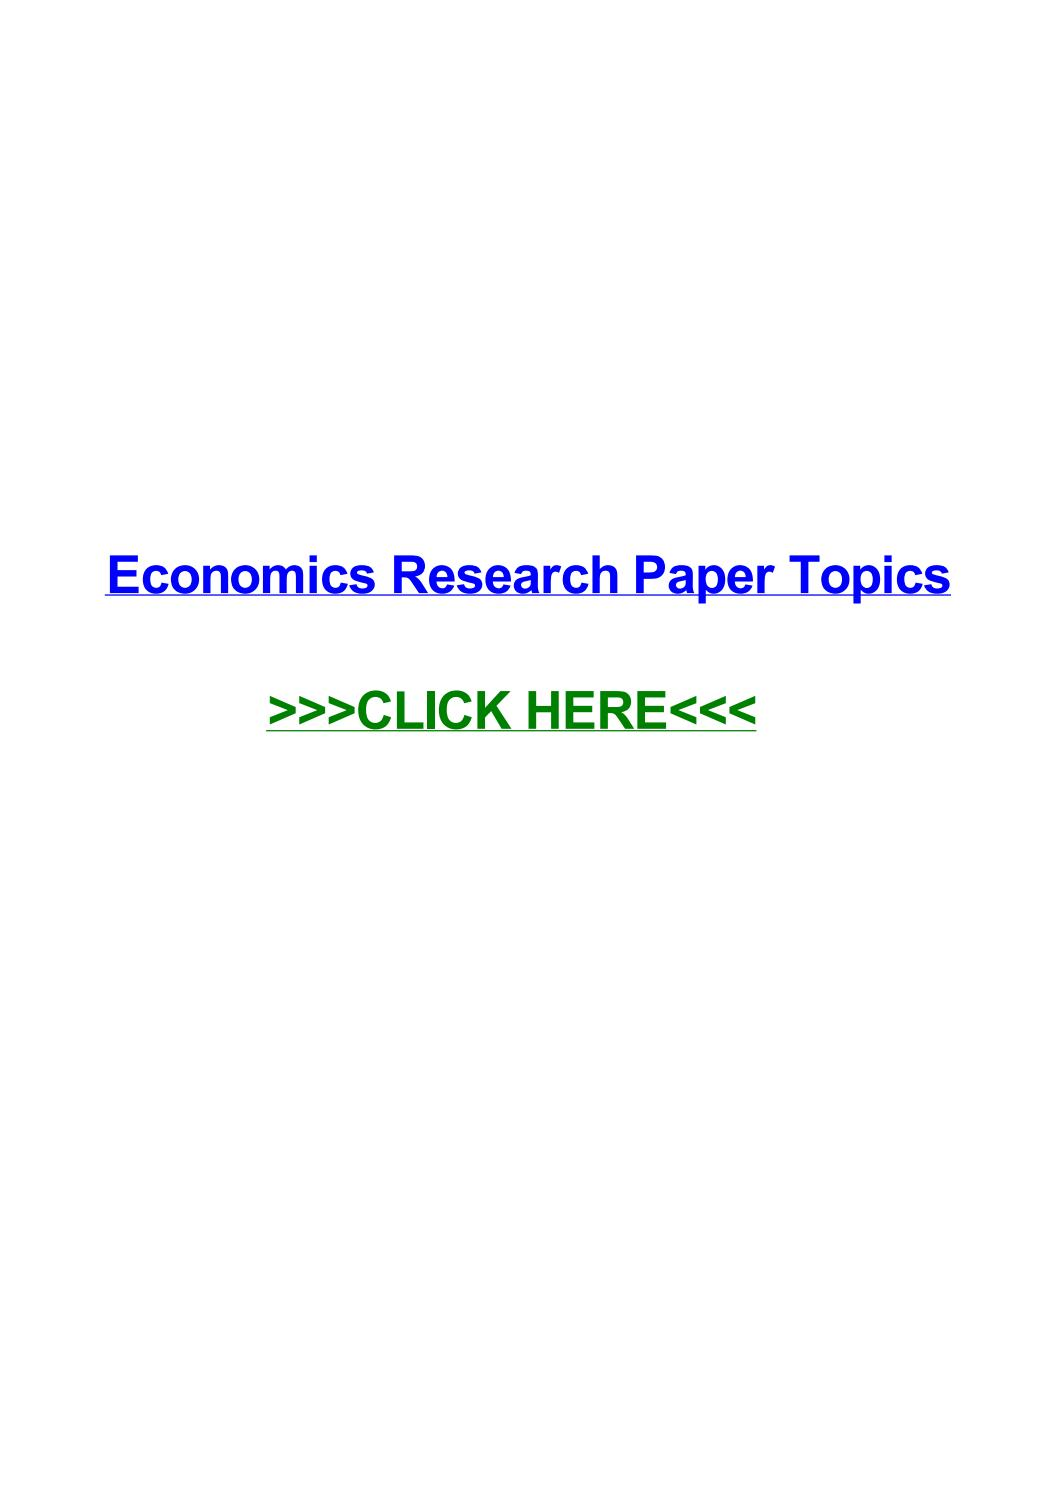 003 Research Paper Economics Topics Page 1 Remarkable In Philippines India International Full